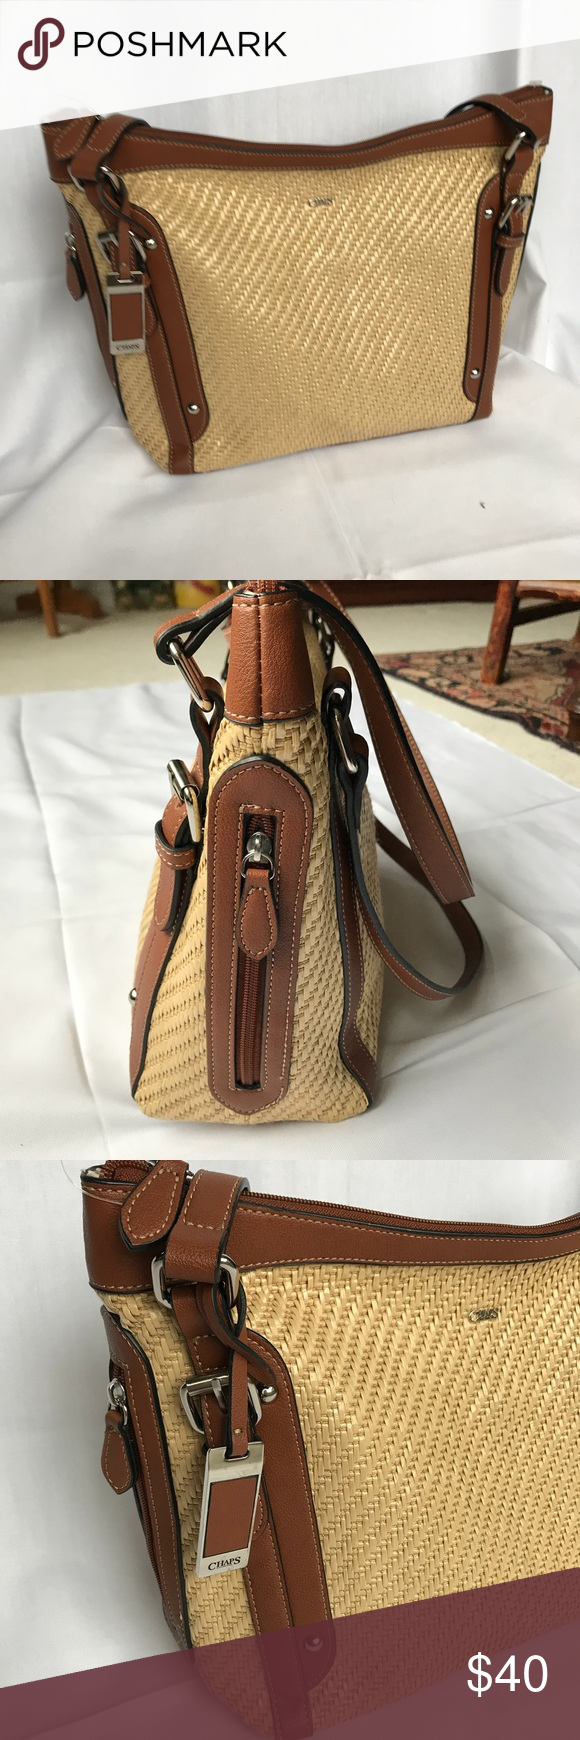 7e0db3dc9f ... discount chaps ralph lauren woven shoulder bag nwot new without tags  never worn chaps ralph lauren ...